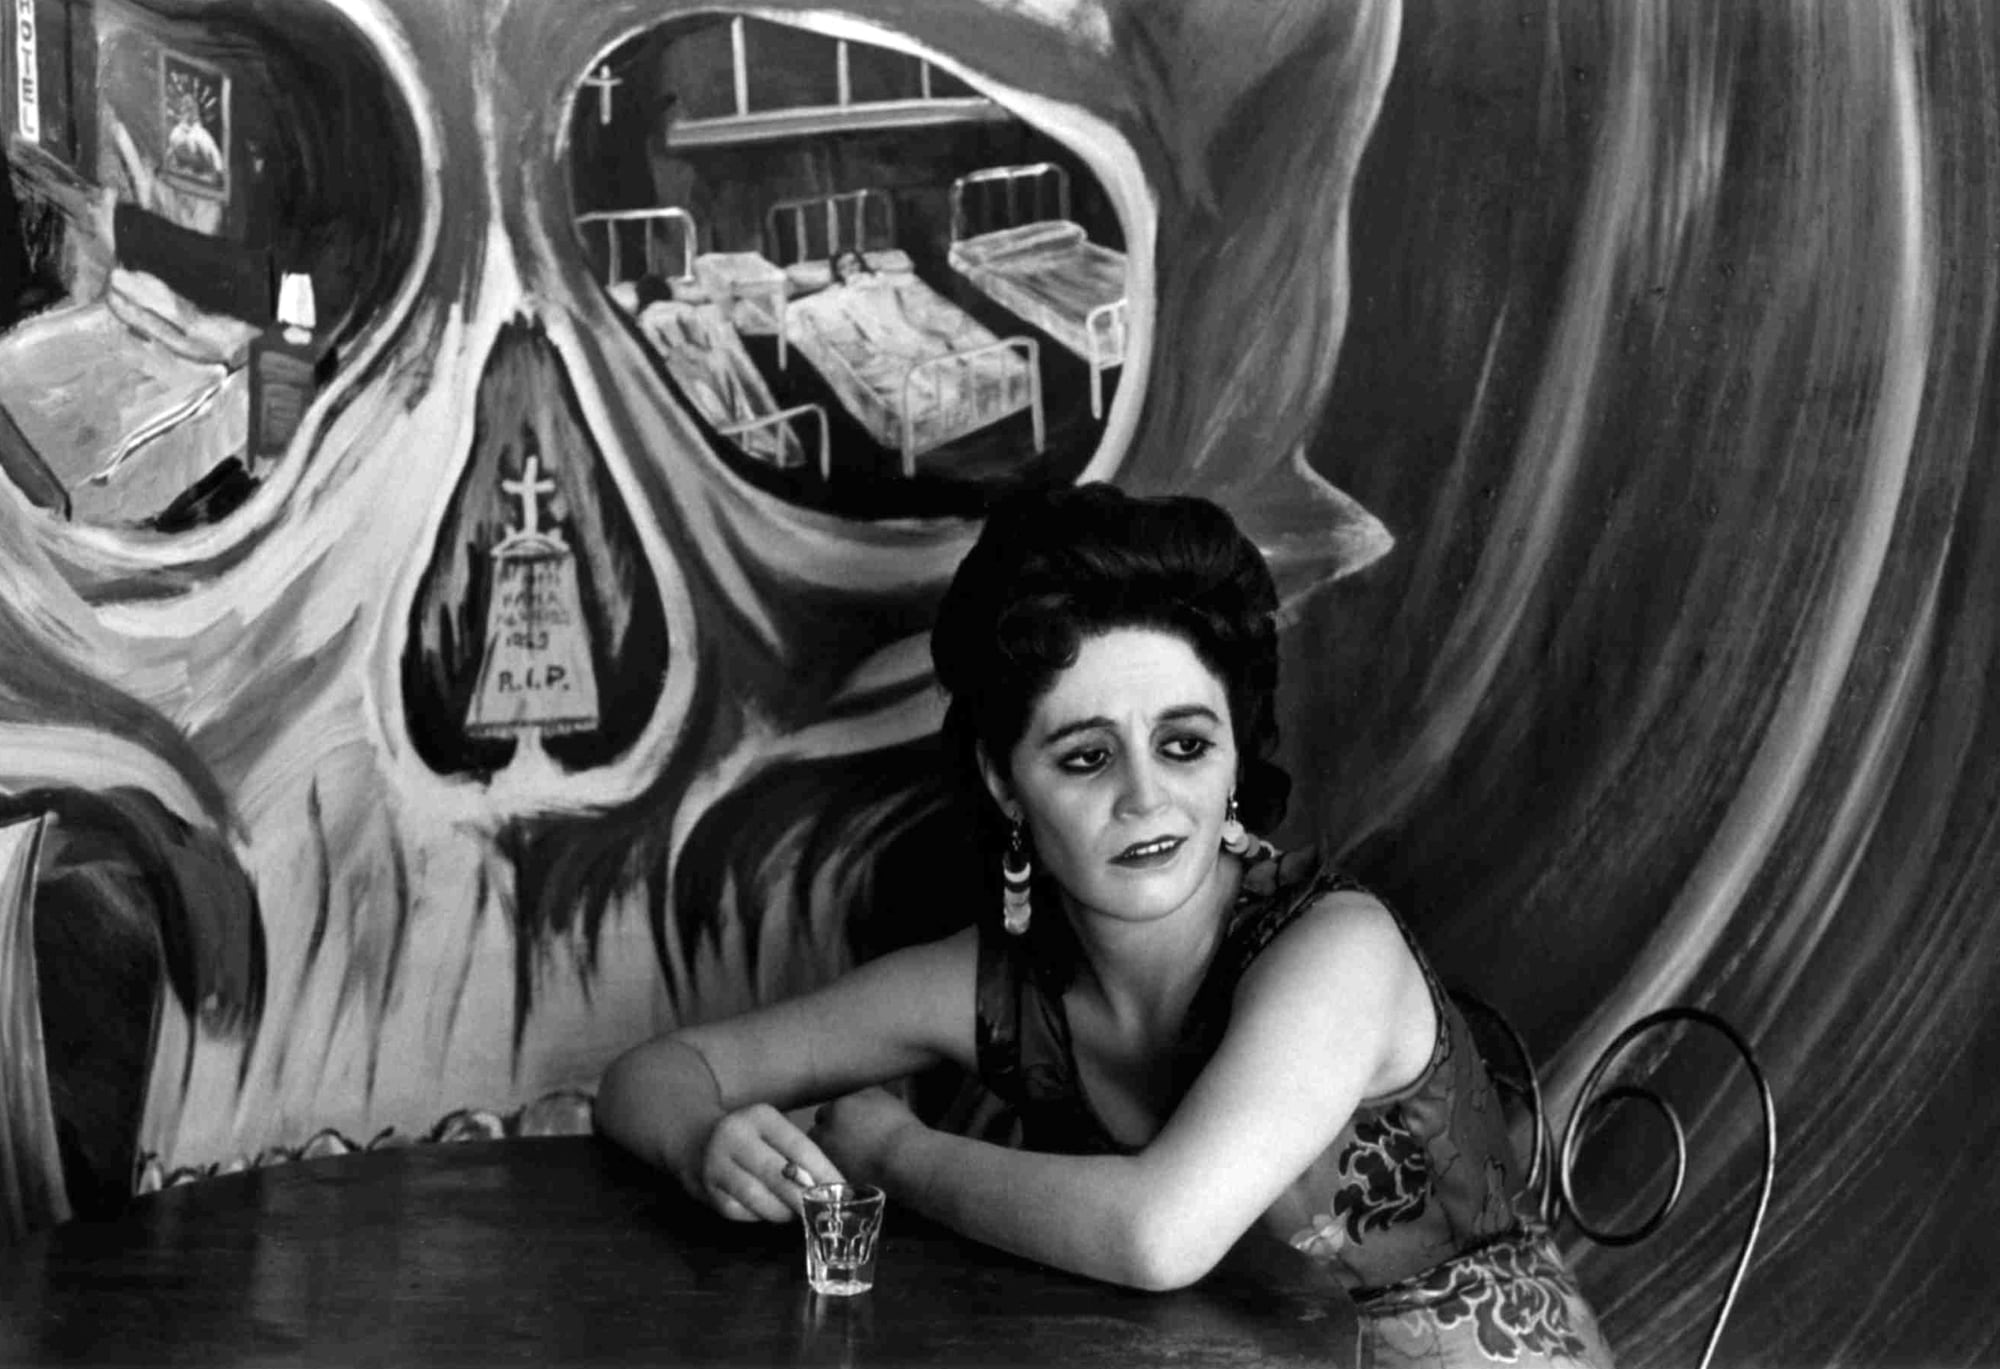 © Graciela Iturbide - Graciela Iturbide, Mexico City, 1969. Outstanding Contribution to Photography, Sony World Photography Awards 2021.